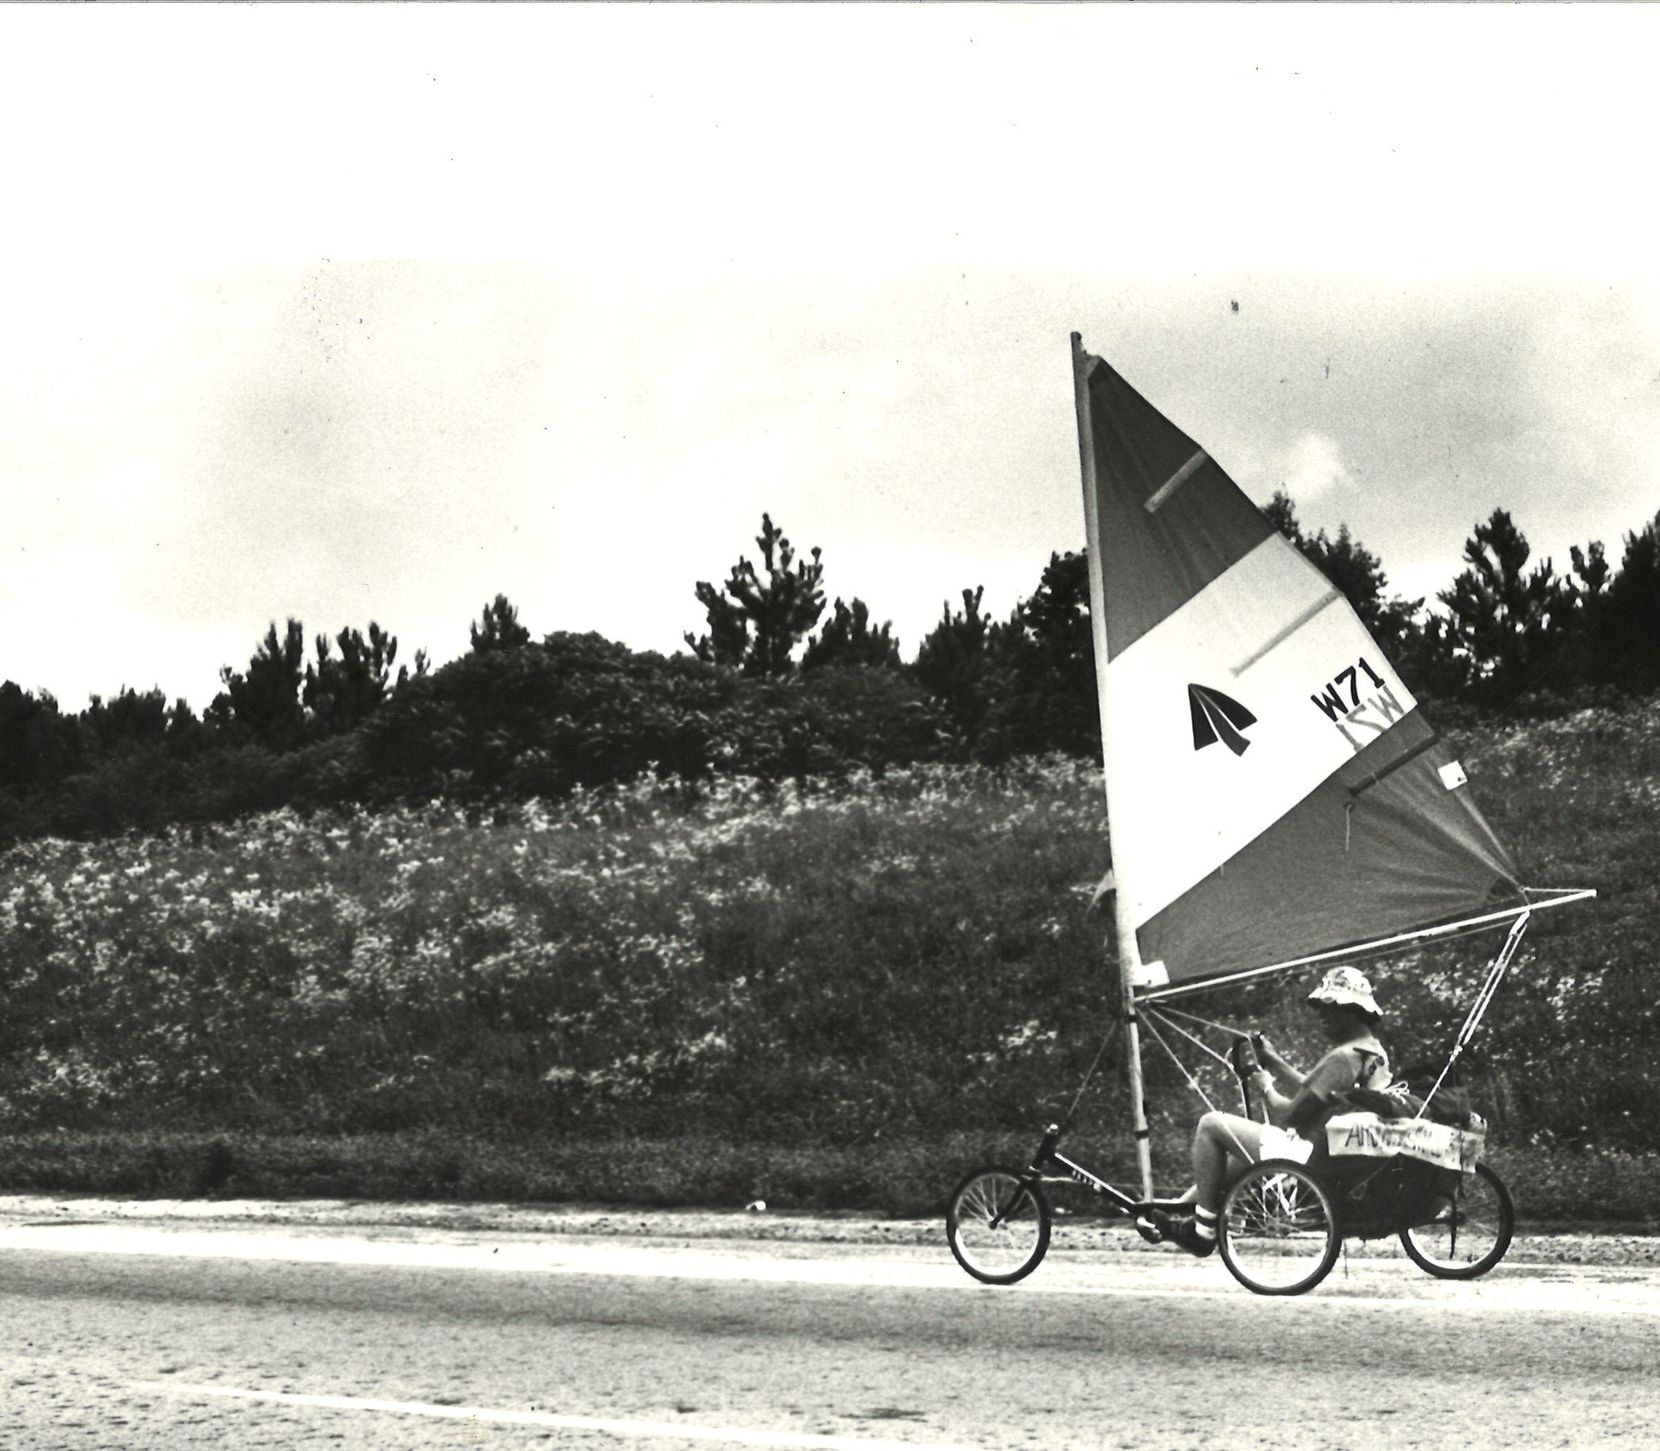 """May 29, 1980: With a good wind, Lloyd Sumner's """"sail trike"""" can average from 150 to 200 miles a day"""